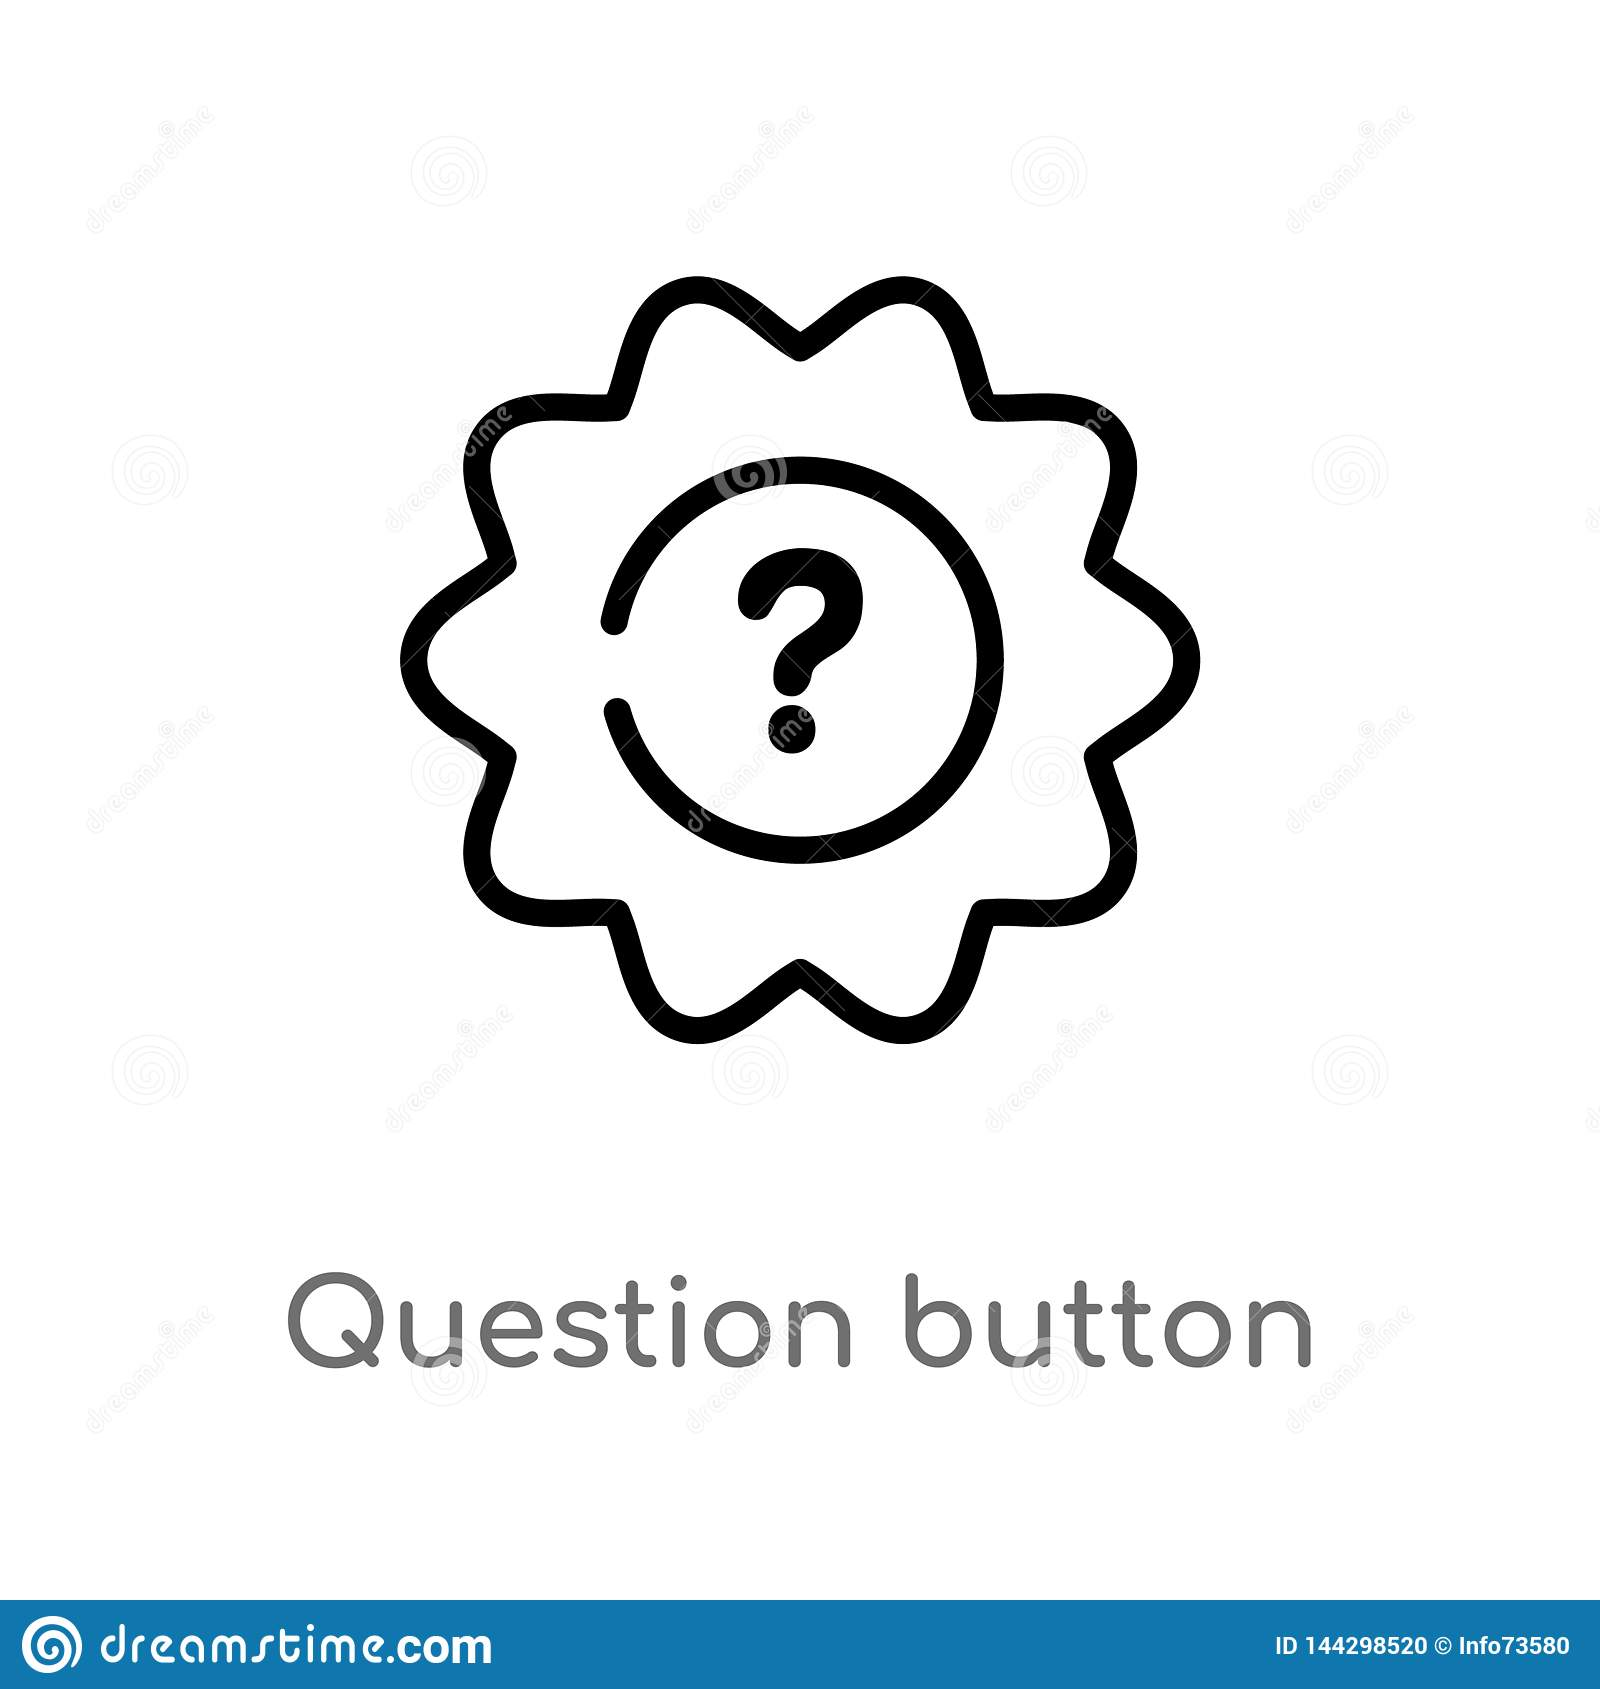 outline question button vector icon. isolated black simple line element illustration from user interface concept. editable vector